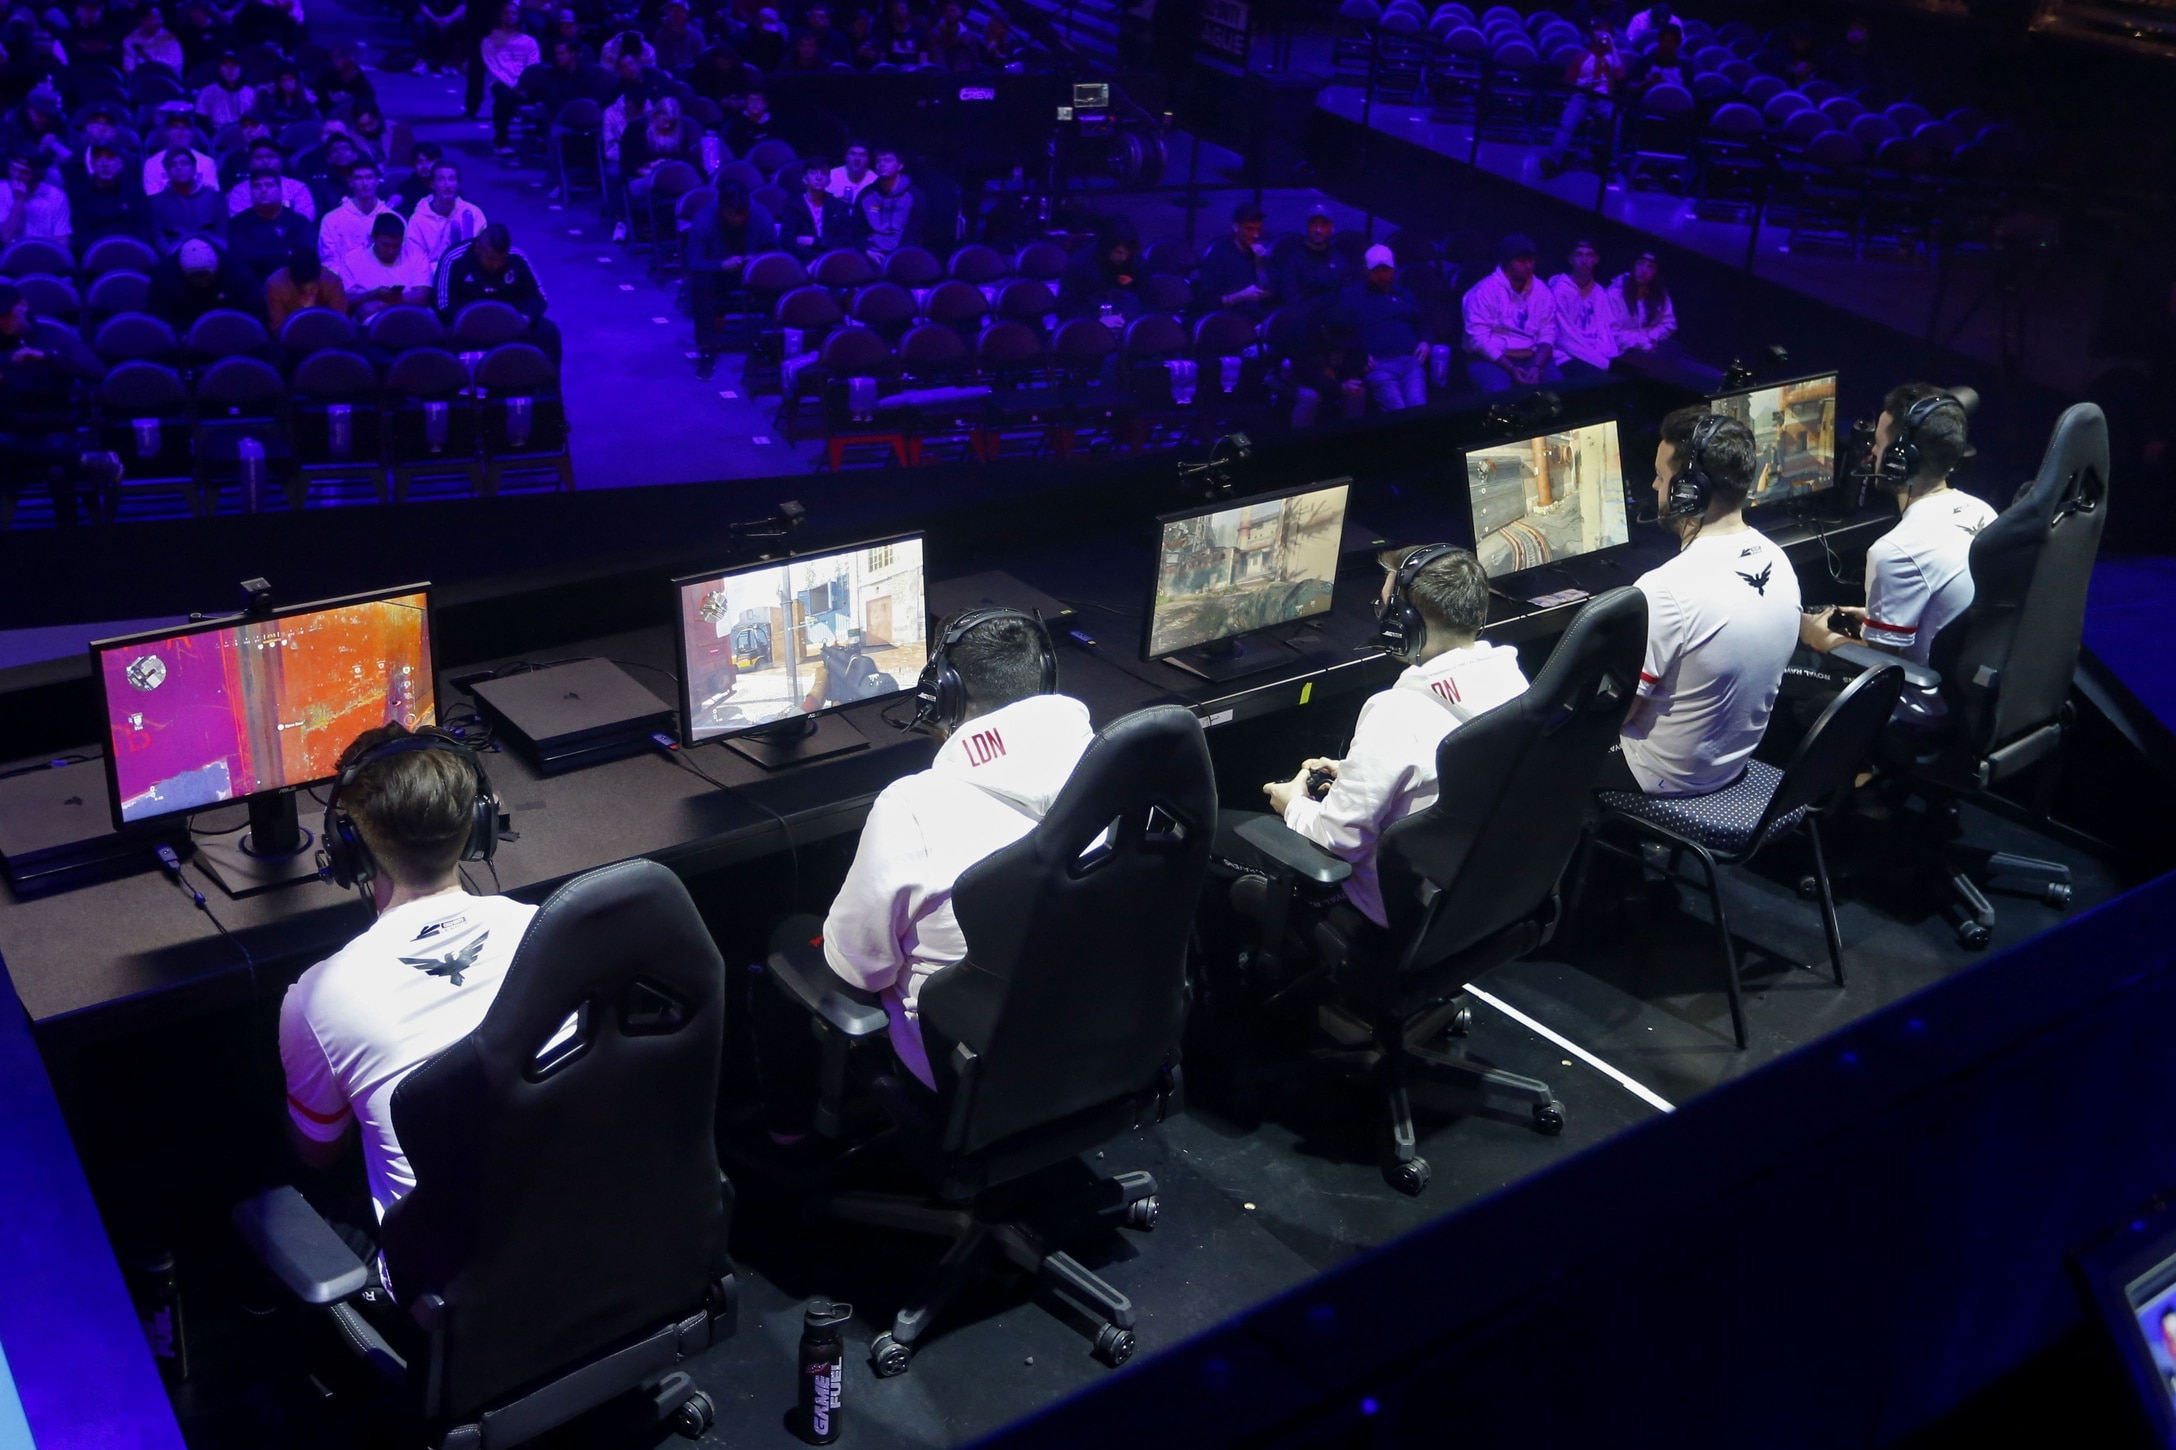 Beginner's guide to eSports: Best places to watch eSports